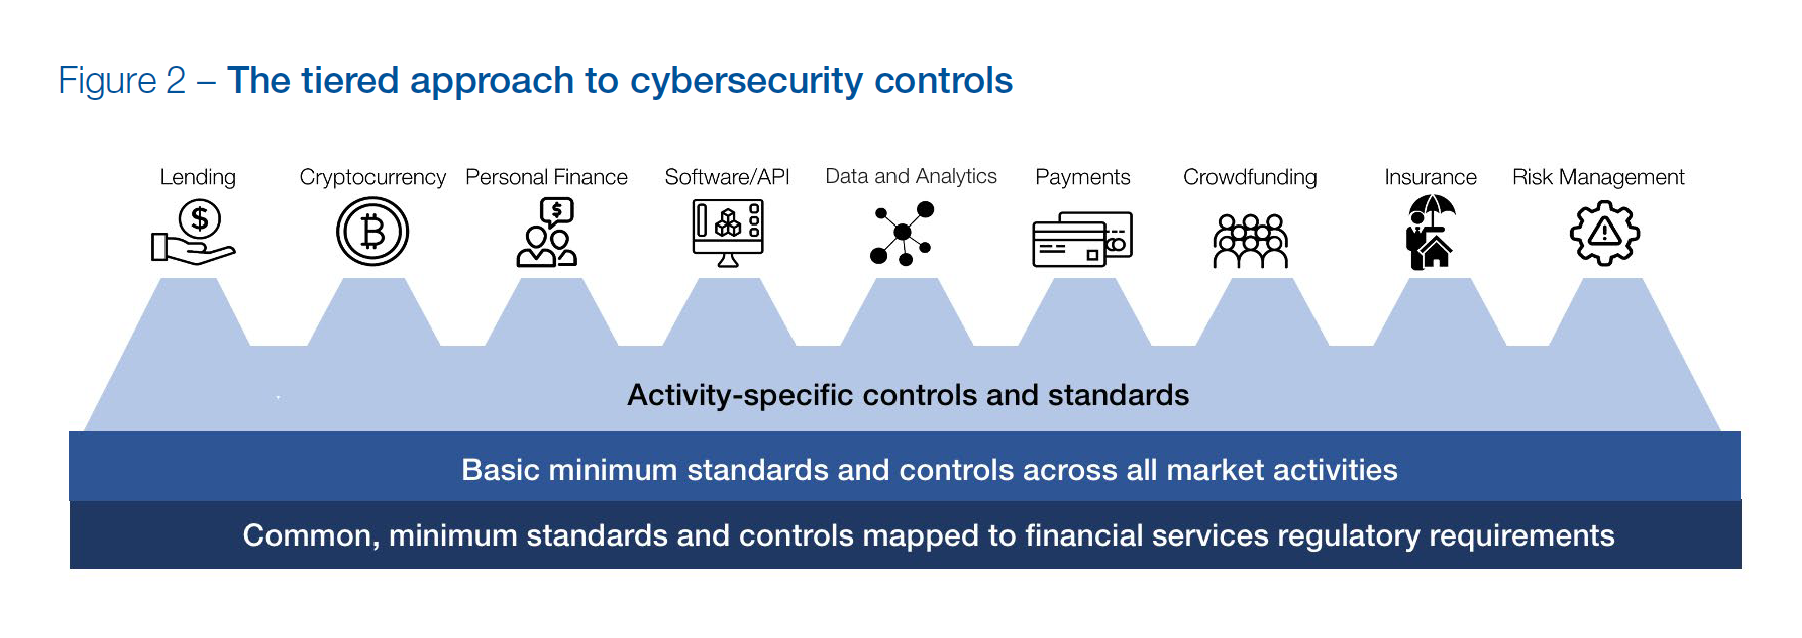 The tiered approach to cybersecurity controls